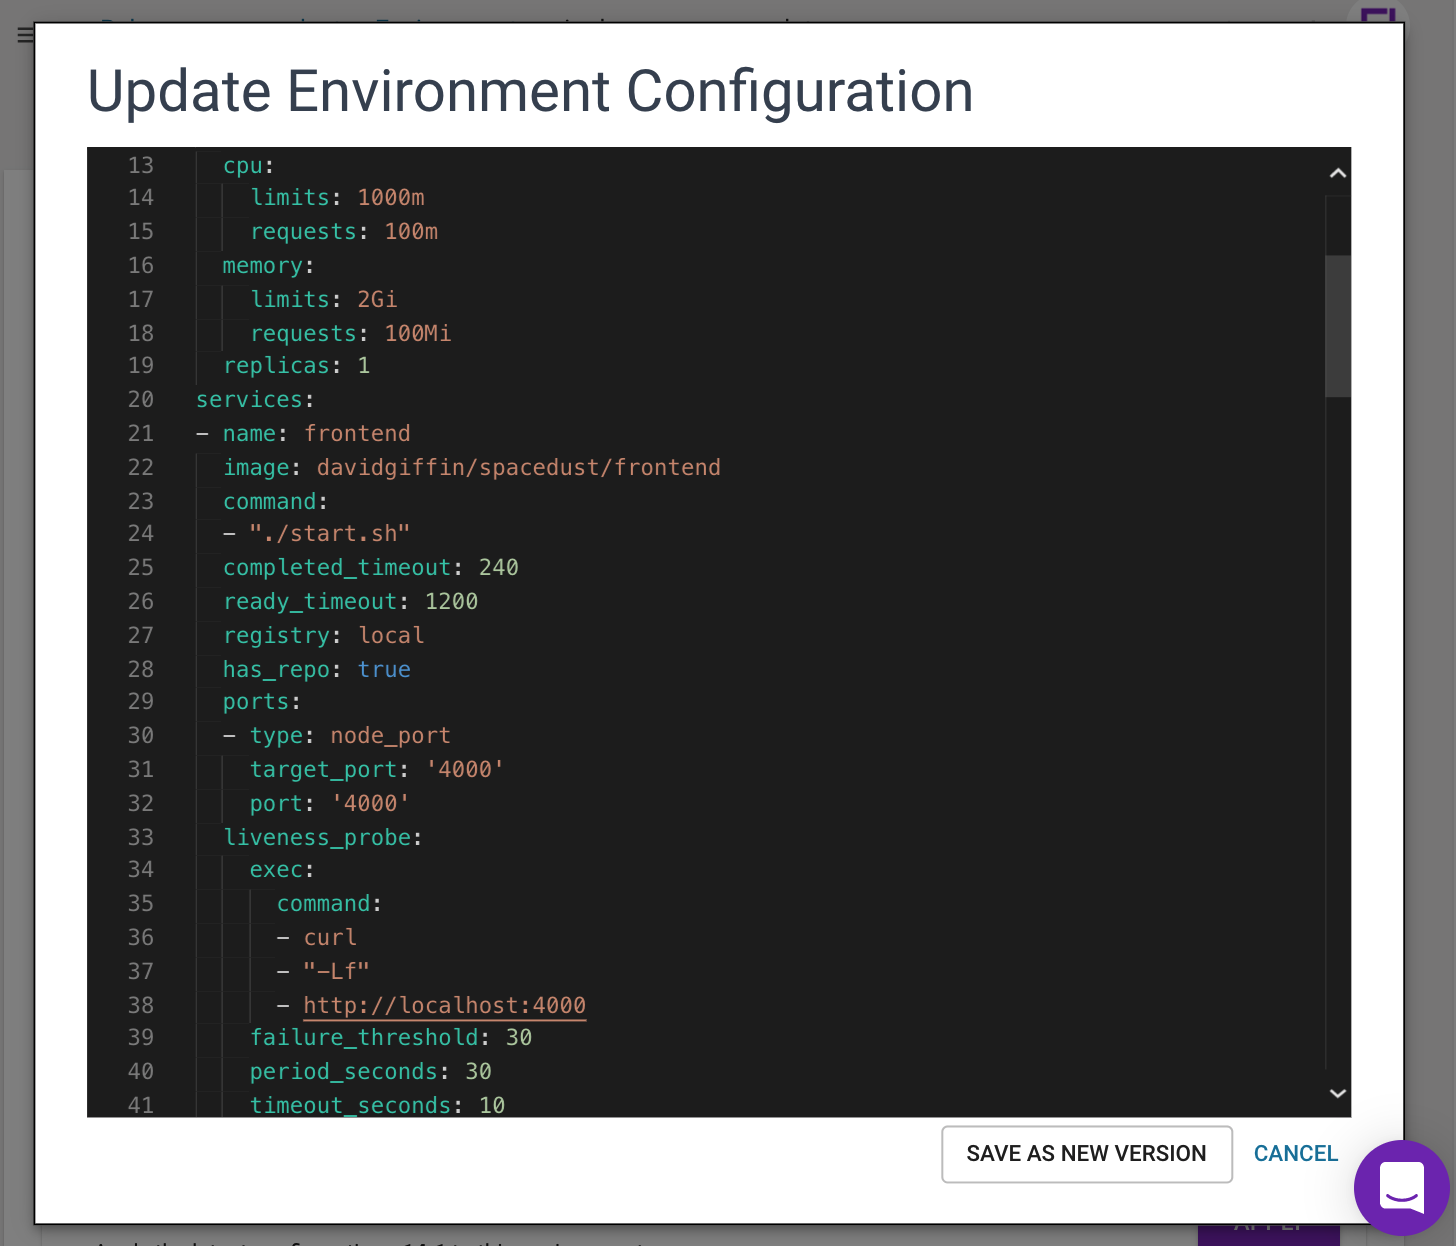 Experiment with environment configuration